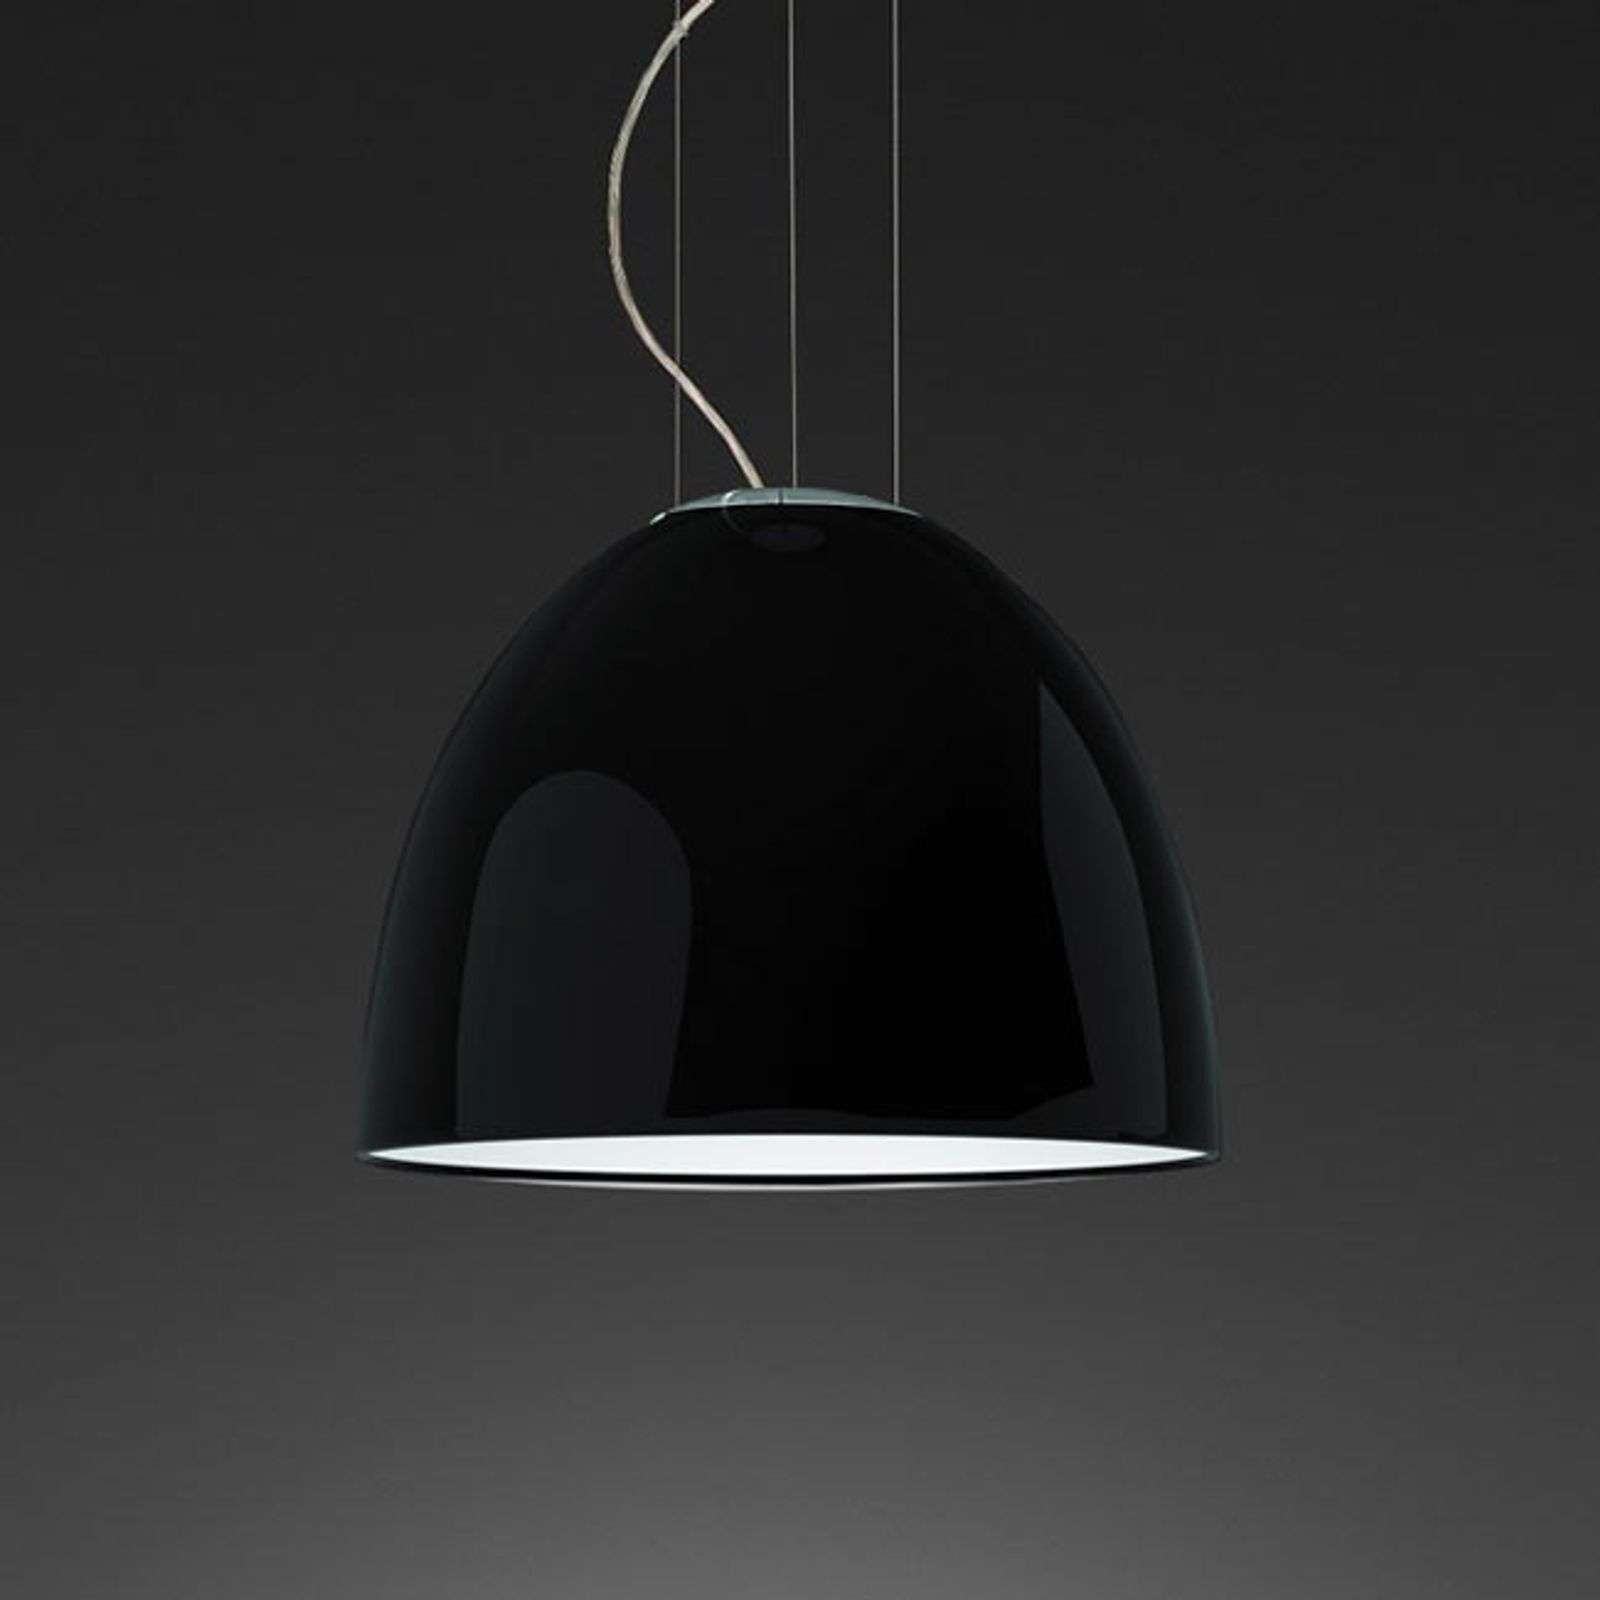 Petite suspension LED de designer Nur Gloss Mini